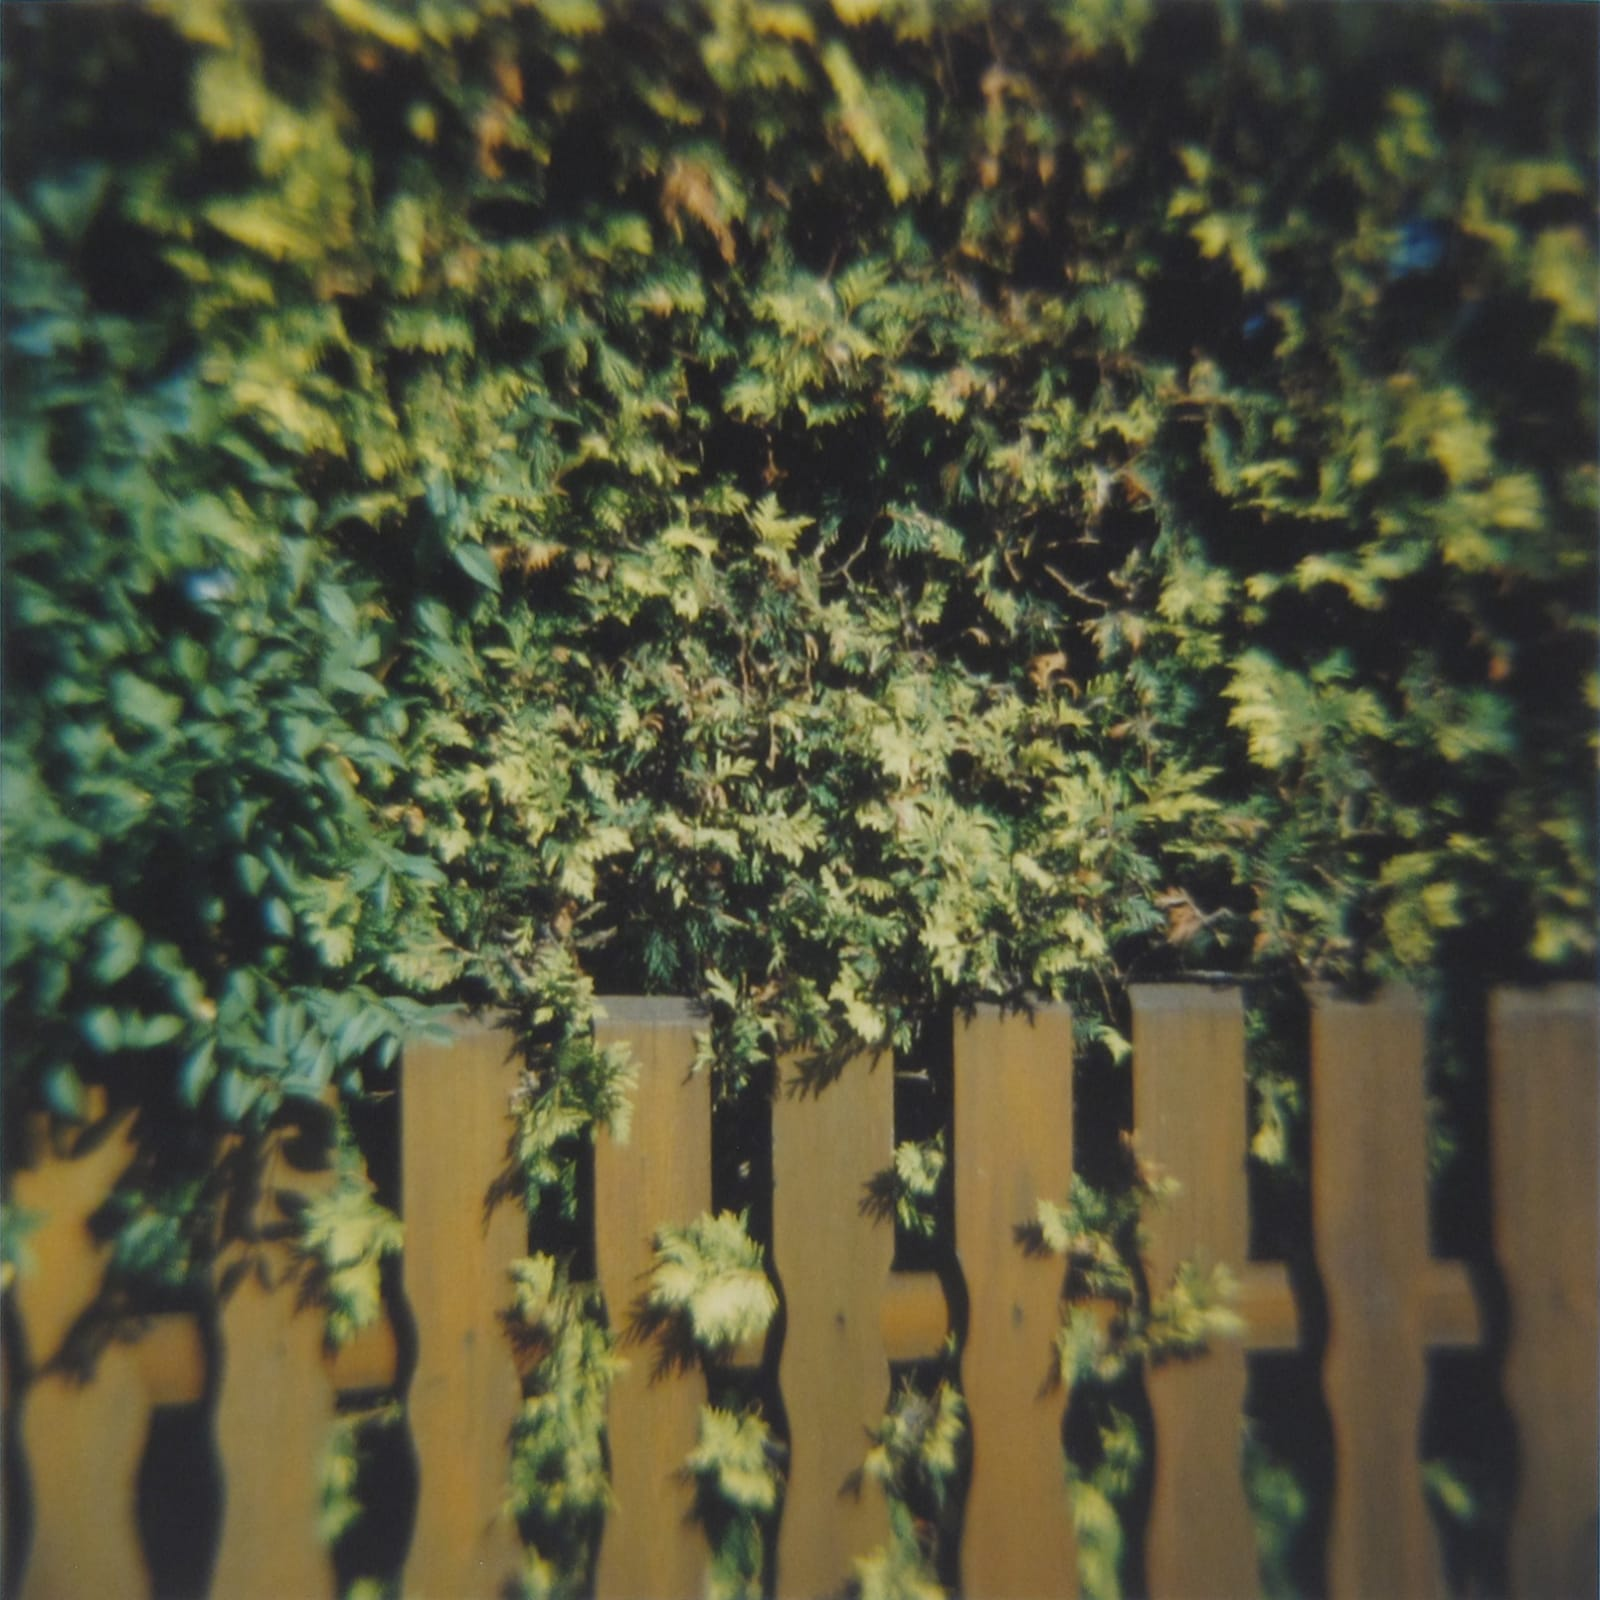 Amy Blakemore Bushes and Fence, 2018 chromogenic print 15 x 15 in (38.1 x 38.1 cm) ABL 248 $3,000